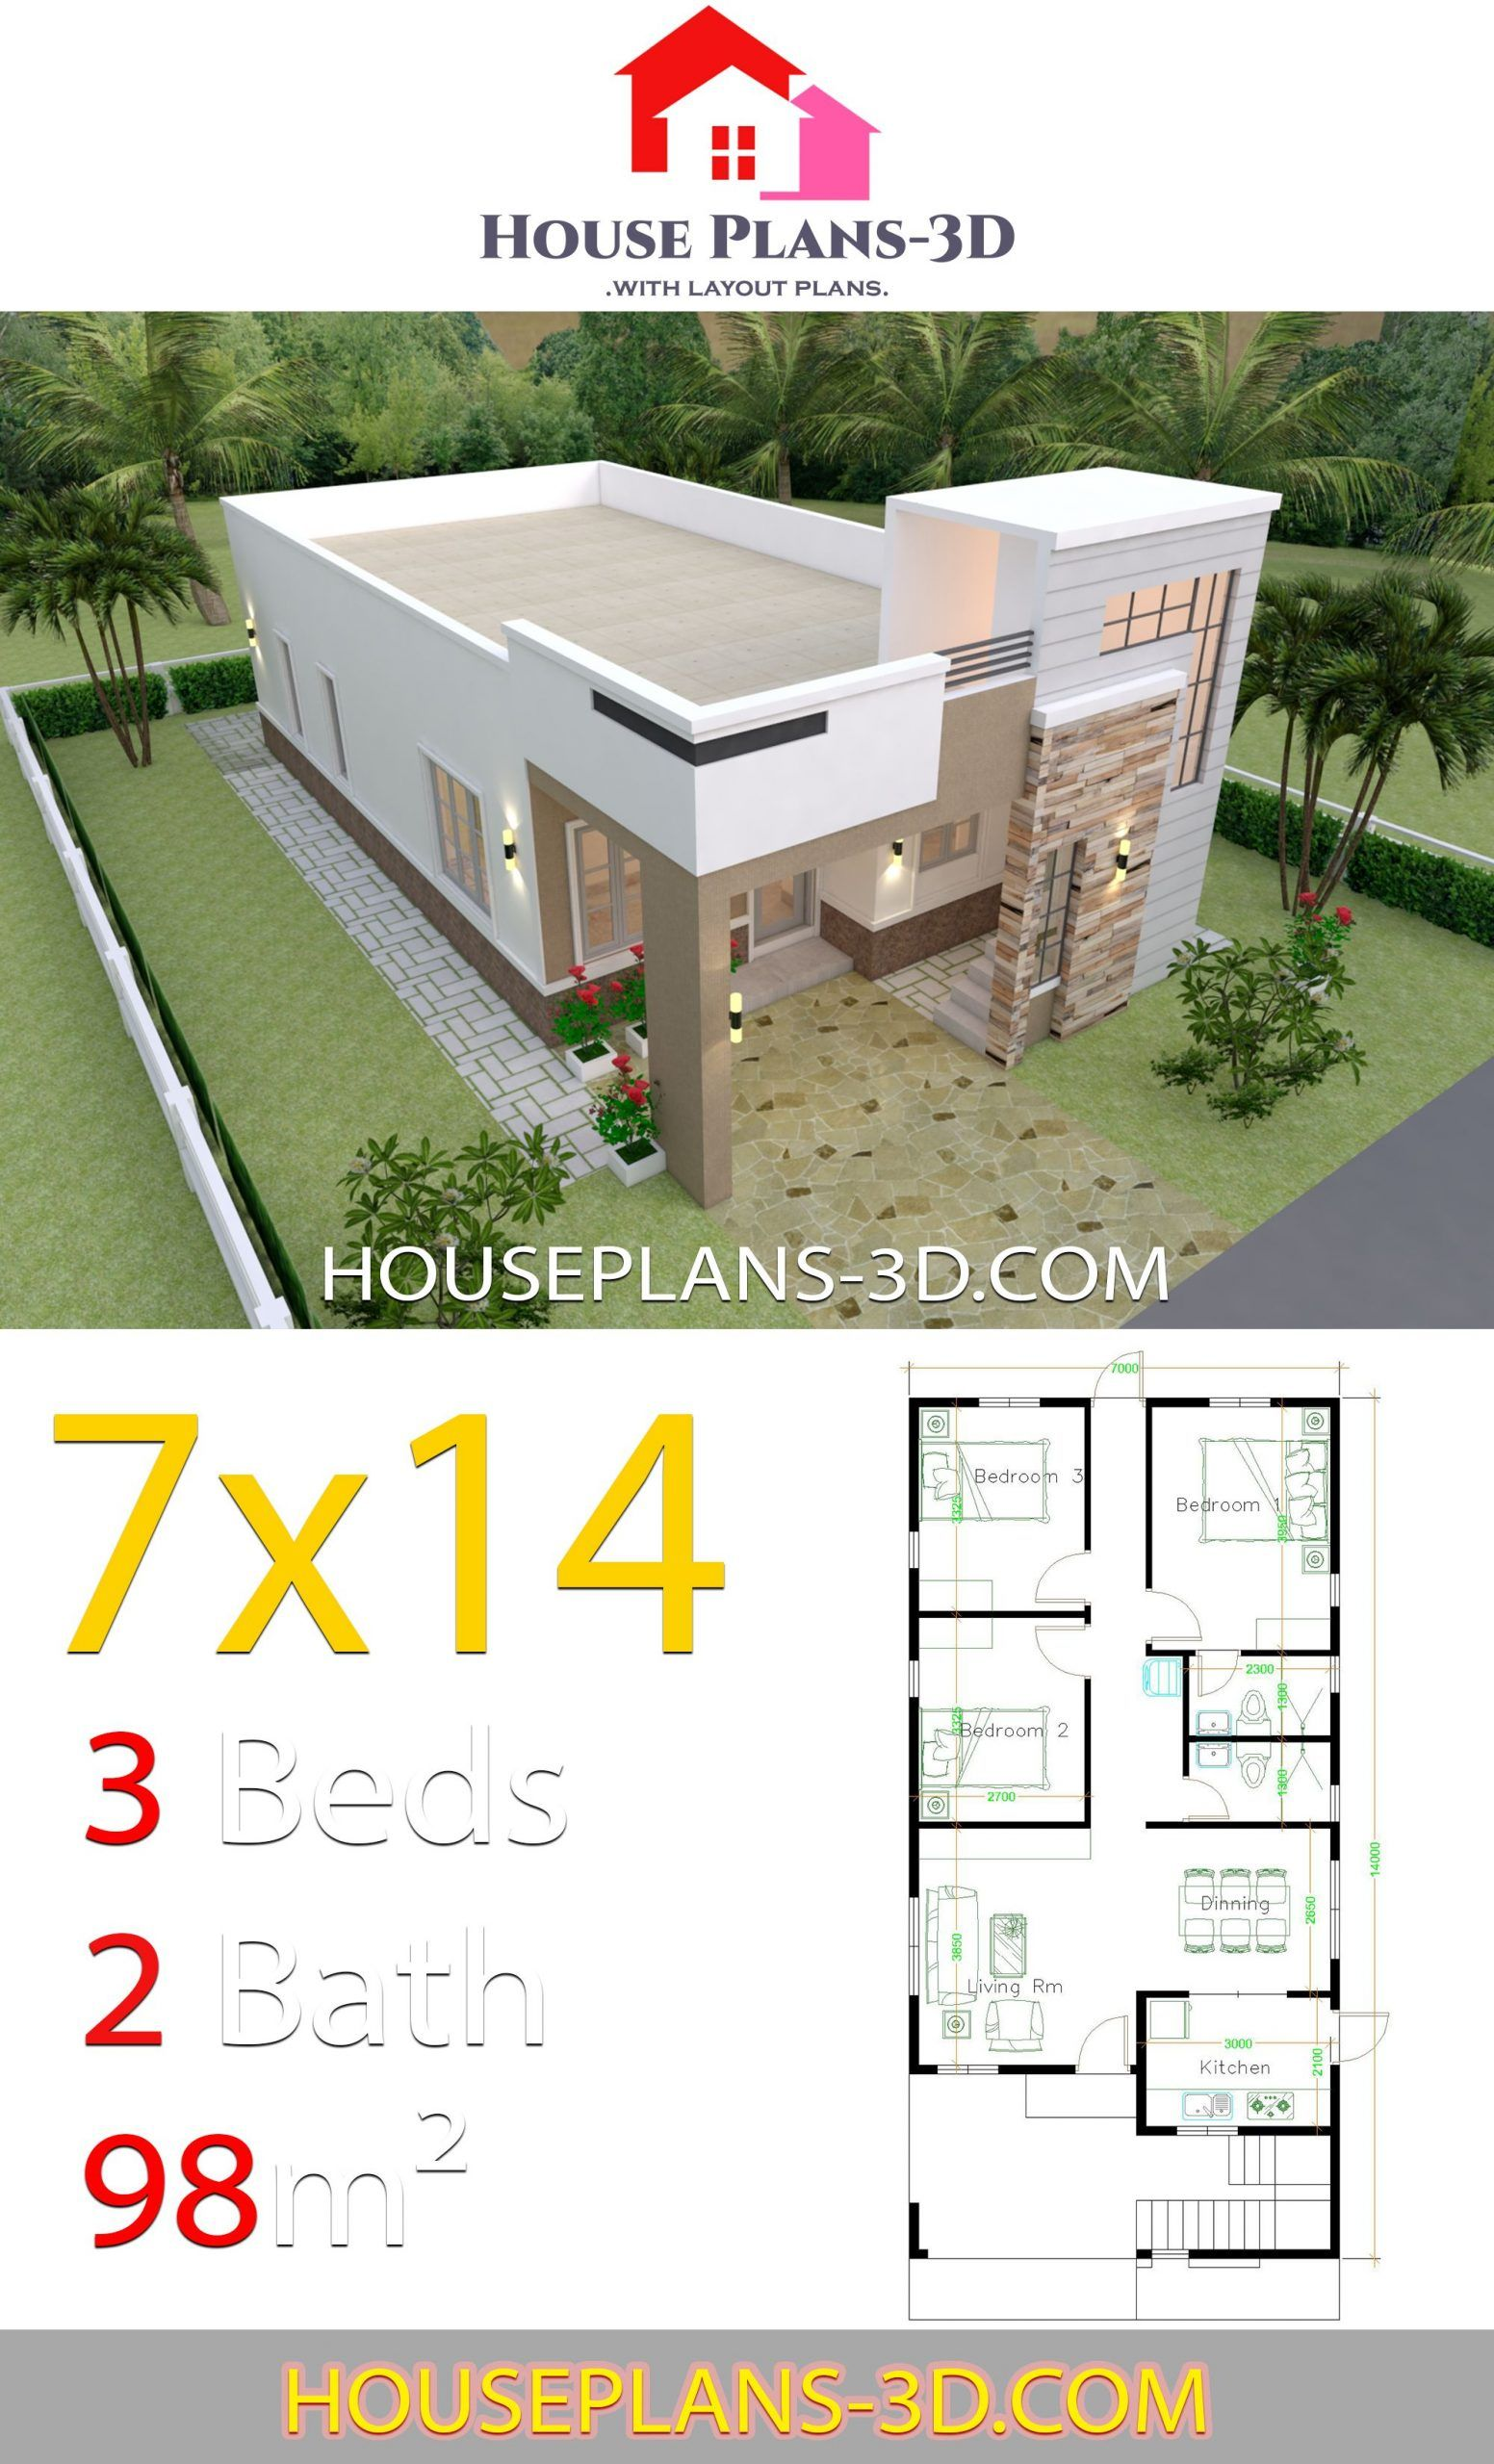 House Design 7x14 With 3 Bedrooms Terrace Roof House Plans 3d 7x14 Bedrooms Design House Plans Ro In 2020 Architectural House Plans House Plans Model House Plan